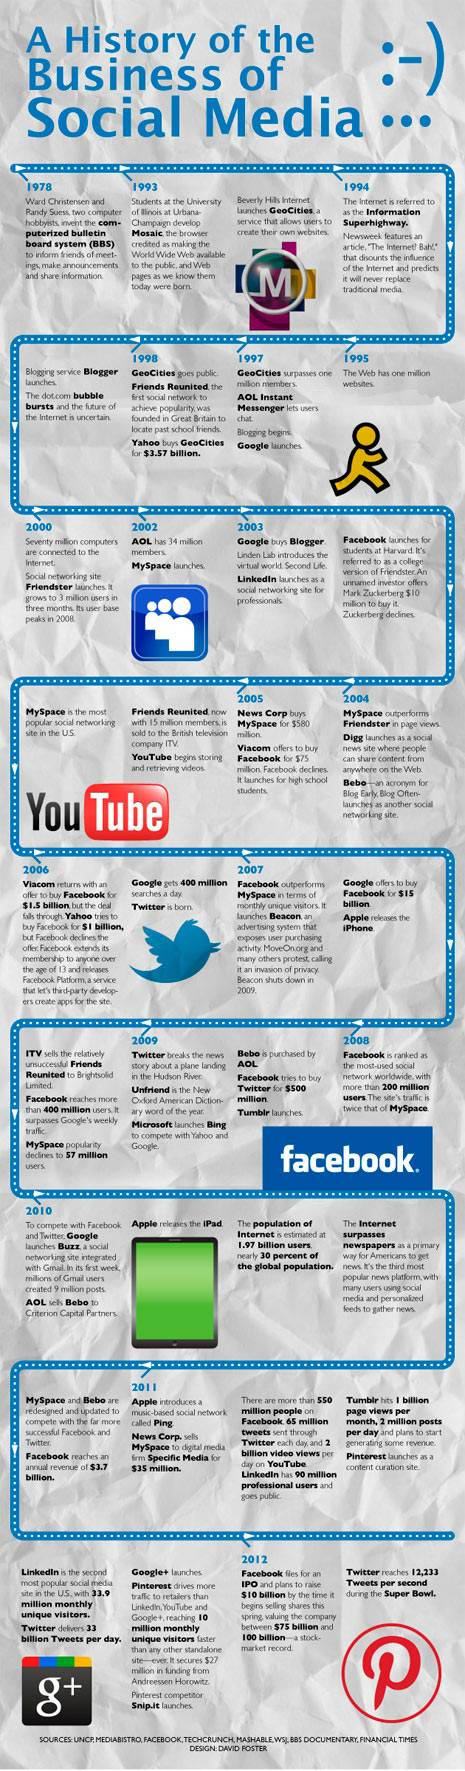 History of social media - made cool ...